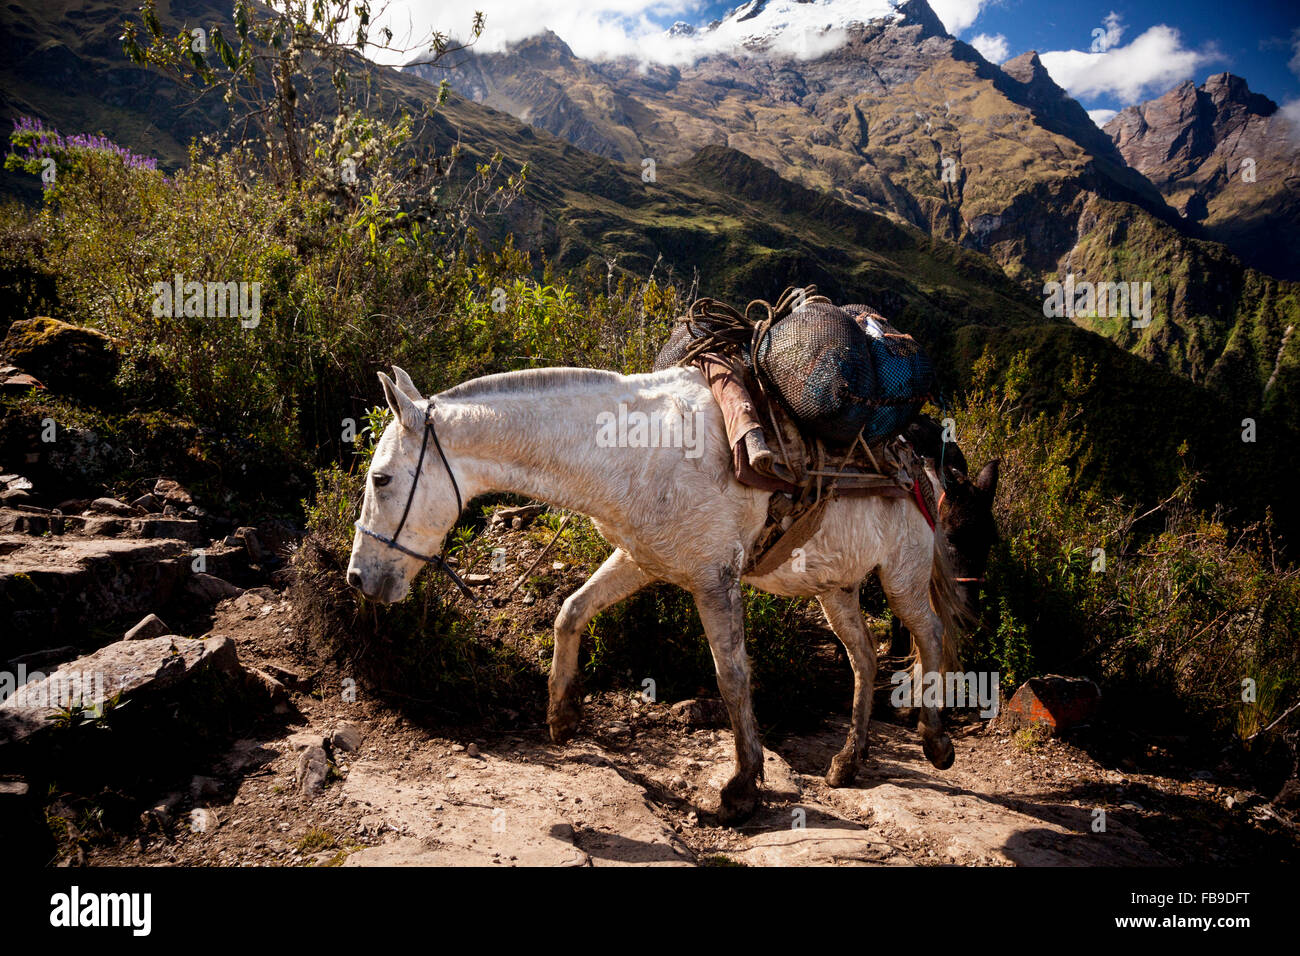 A pack-mule approaches a mountain pass on the Choququirao Trail, Peru. - Stock Image